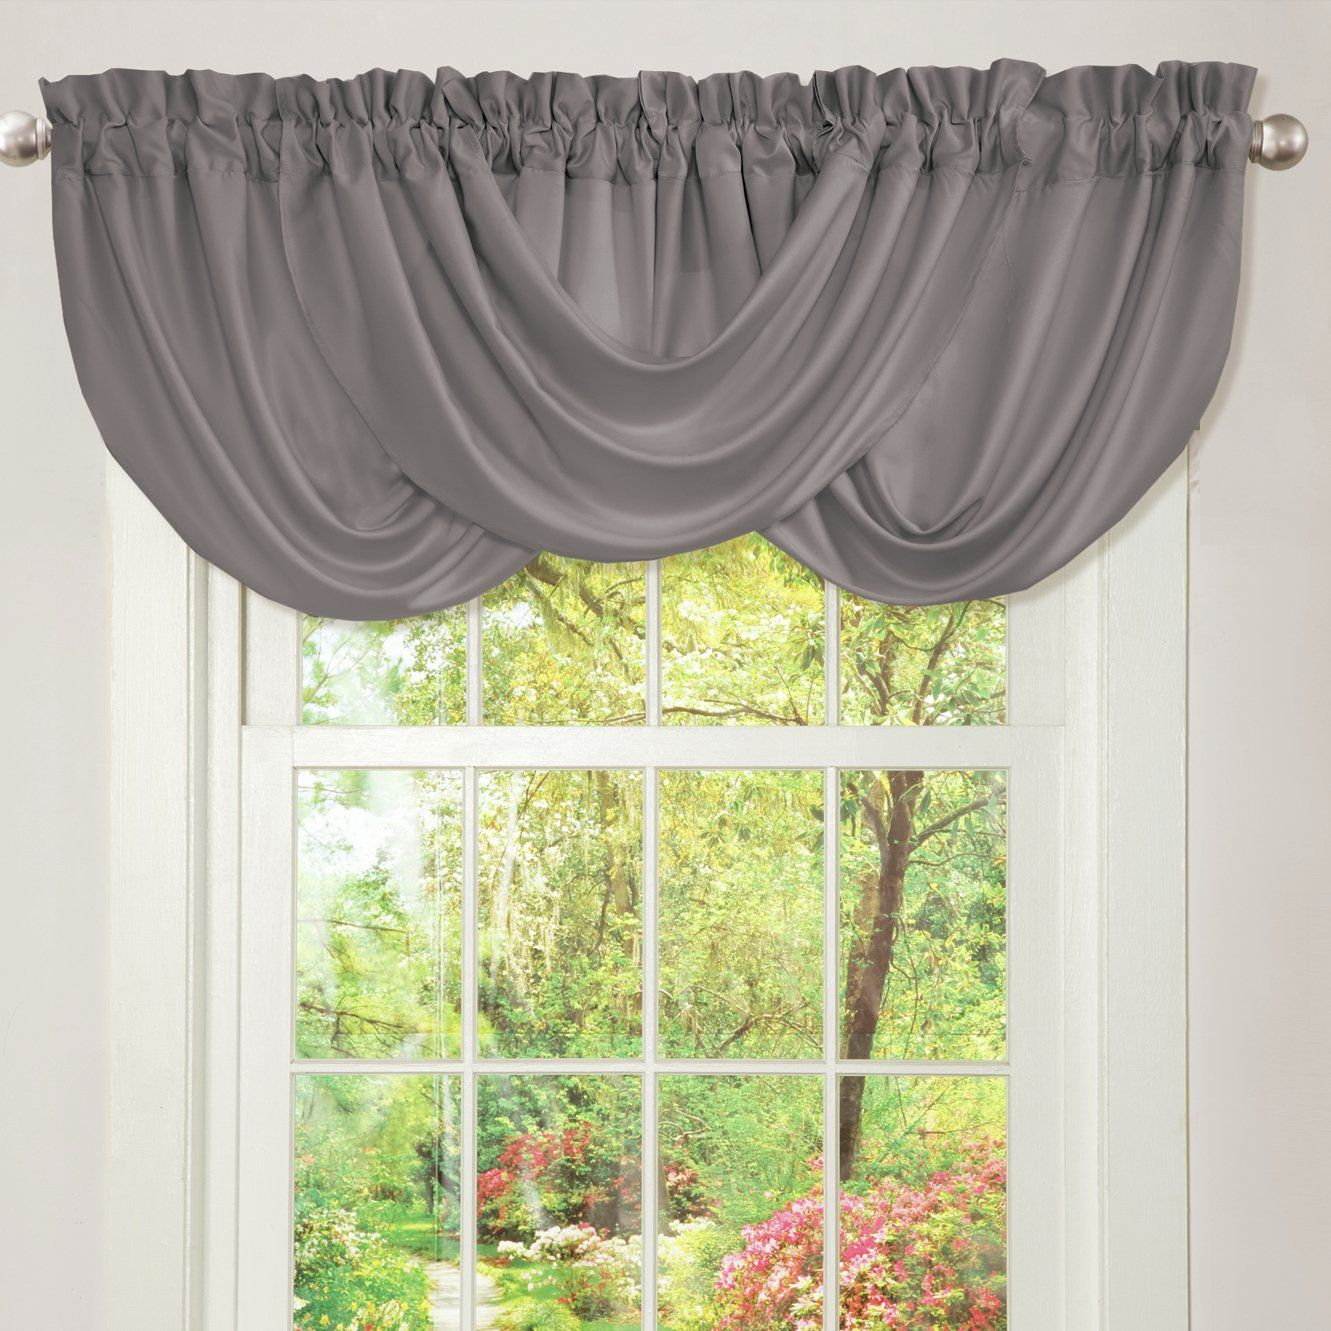 Arabian 40 Curtain Valance